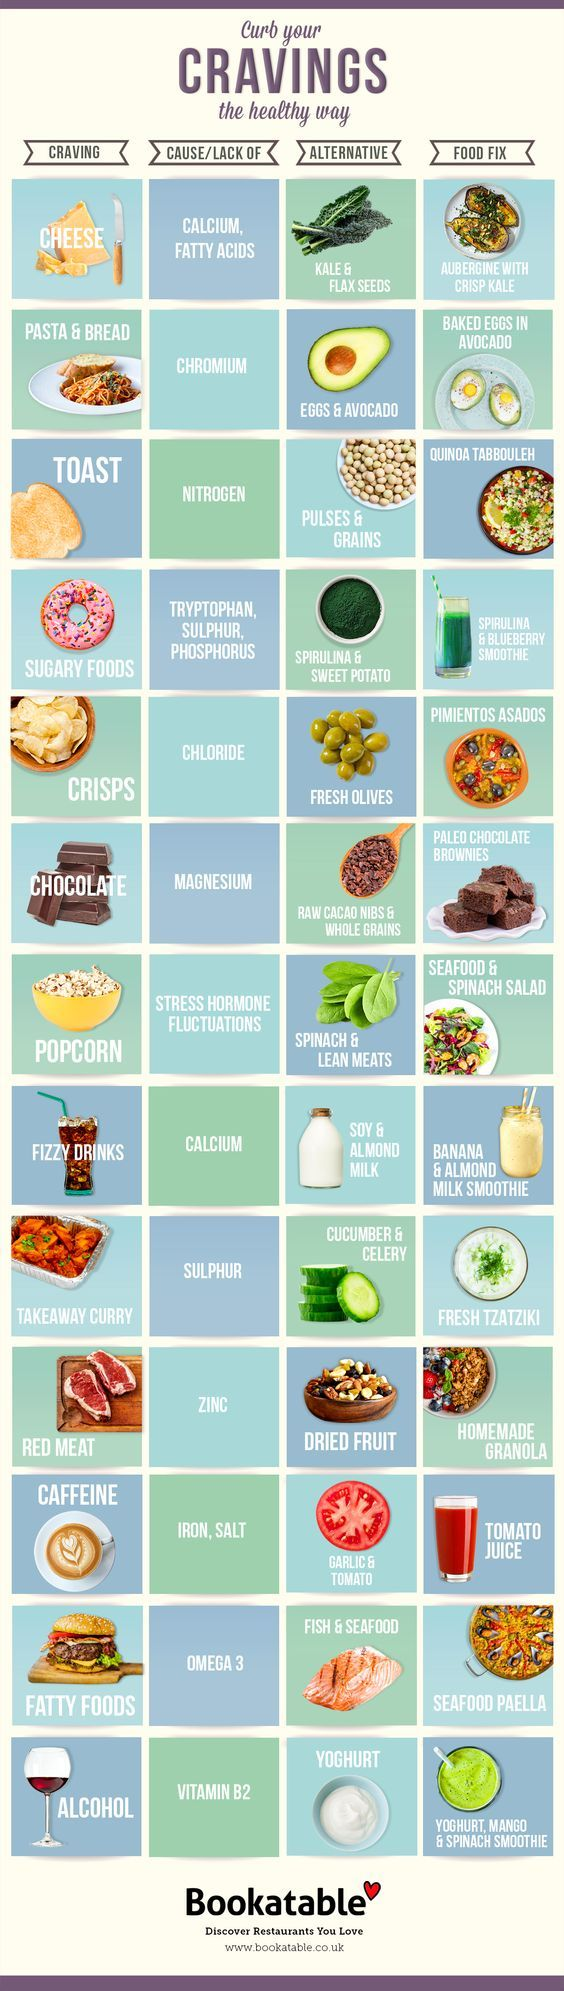 Curb Your Cravings the Healthy Way #Infographic